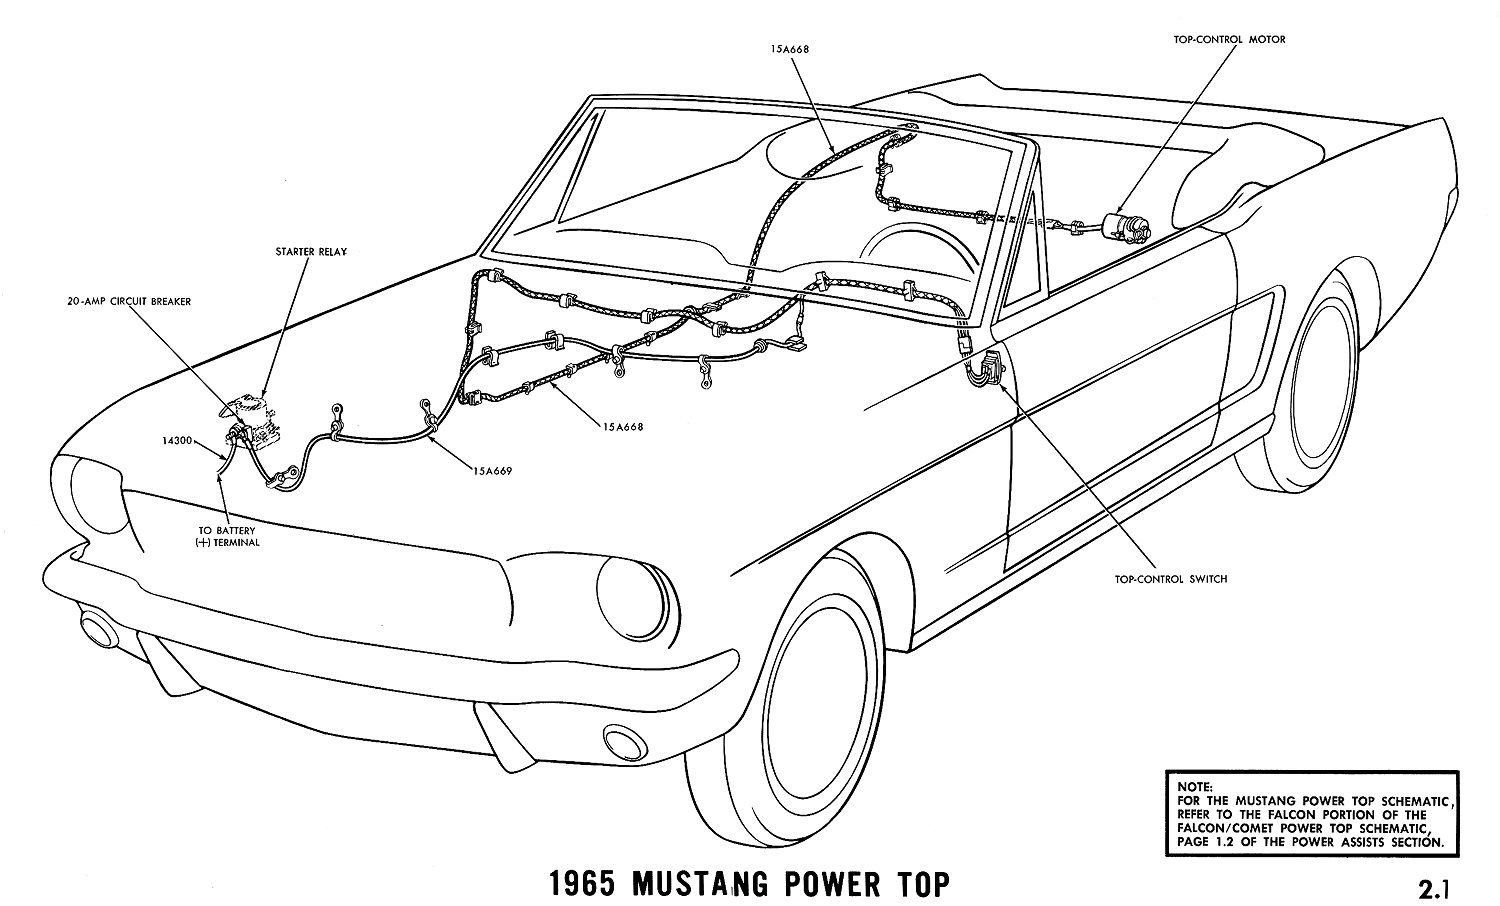 1965 mustang power top pictorial or schematic